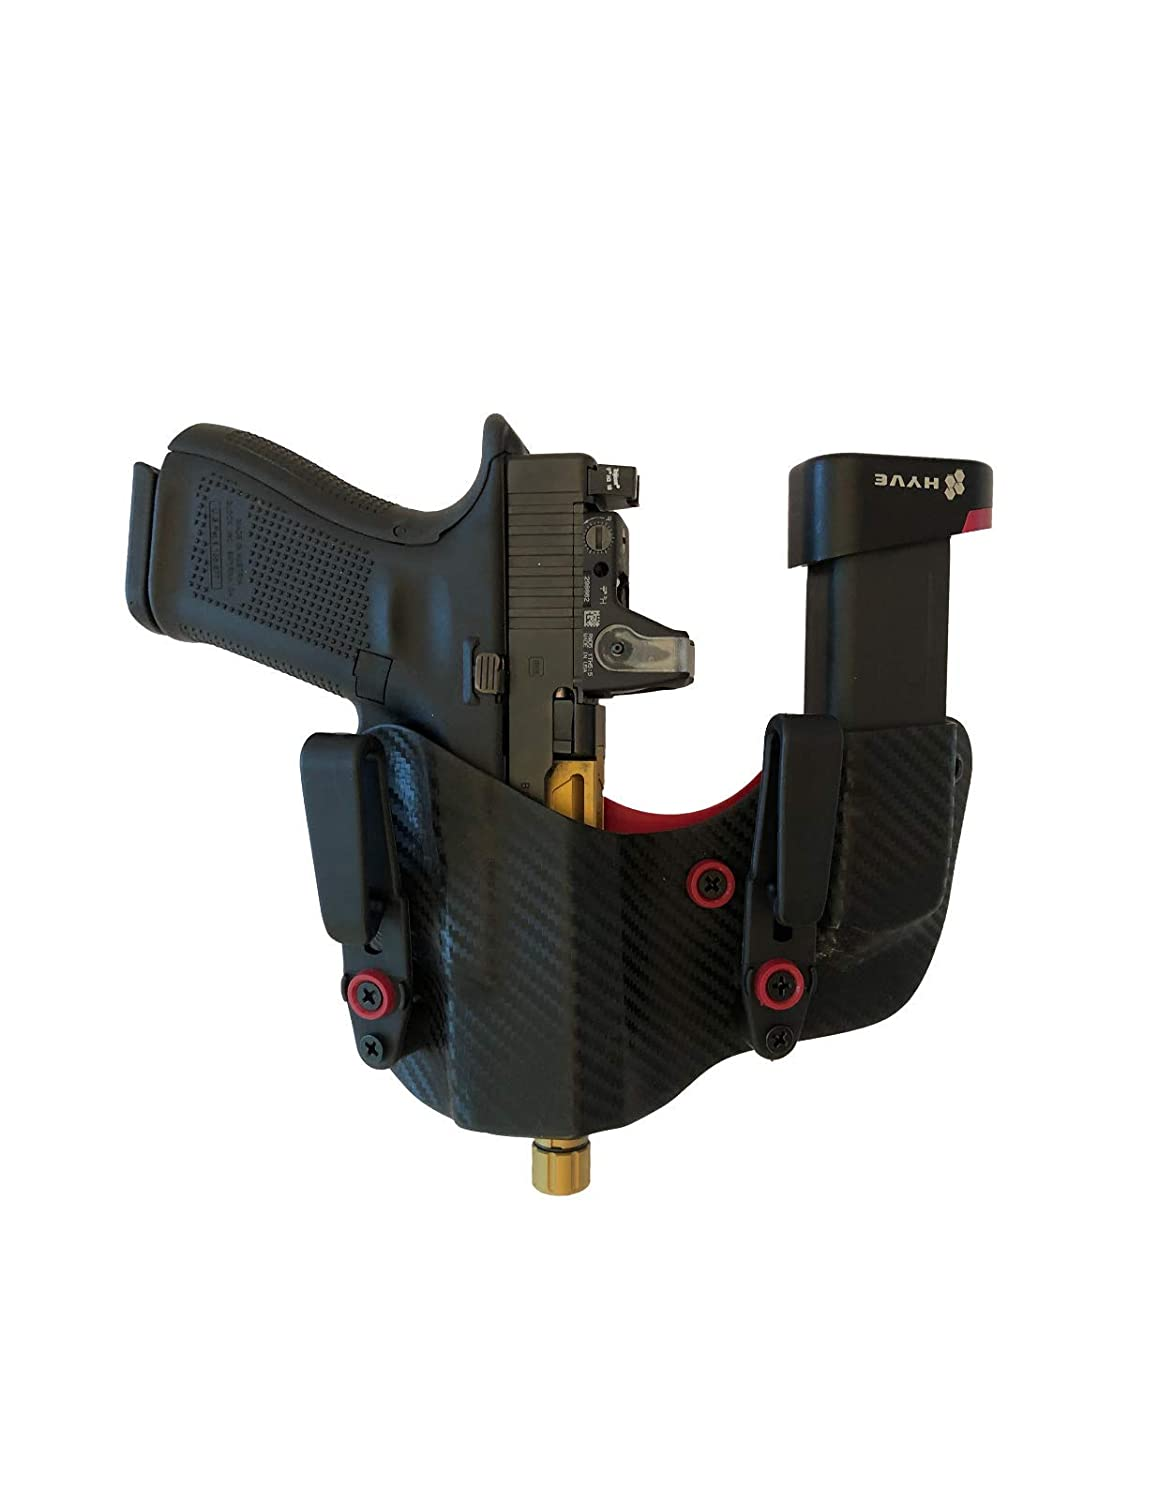 Elite Force Holsters Holster Fits SIG SAUER Lima XL List price w Ligh P365 Award